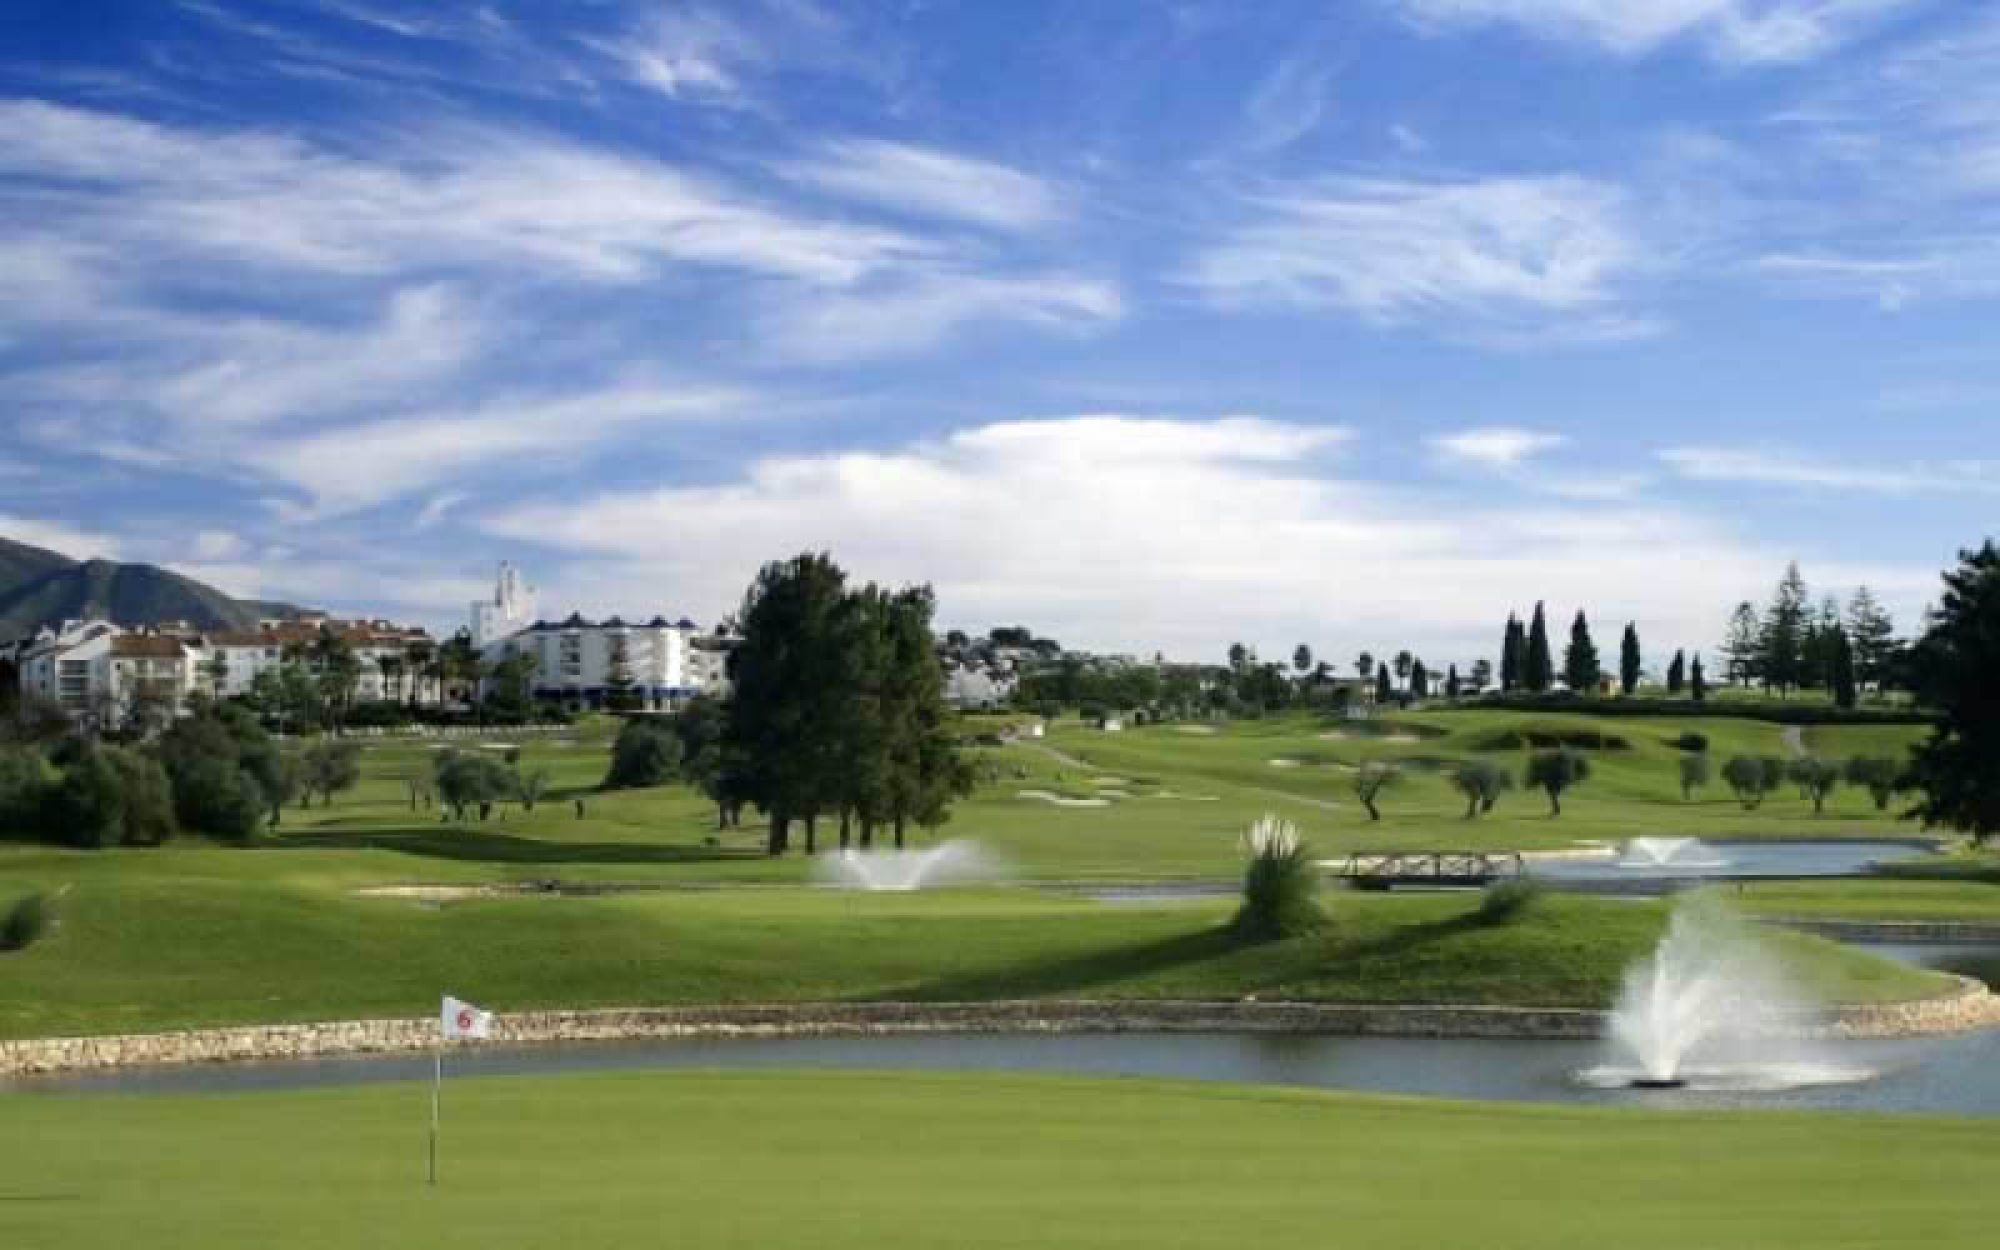 The Mijas Golf Club - Los Olivos's lovely golf course in pleasing Costa Del Sol.